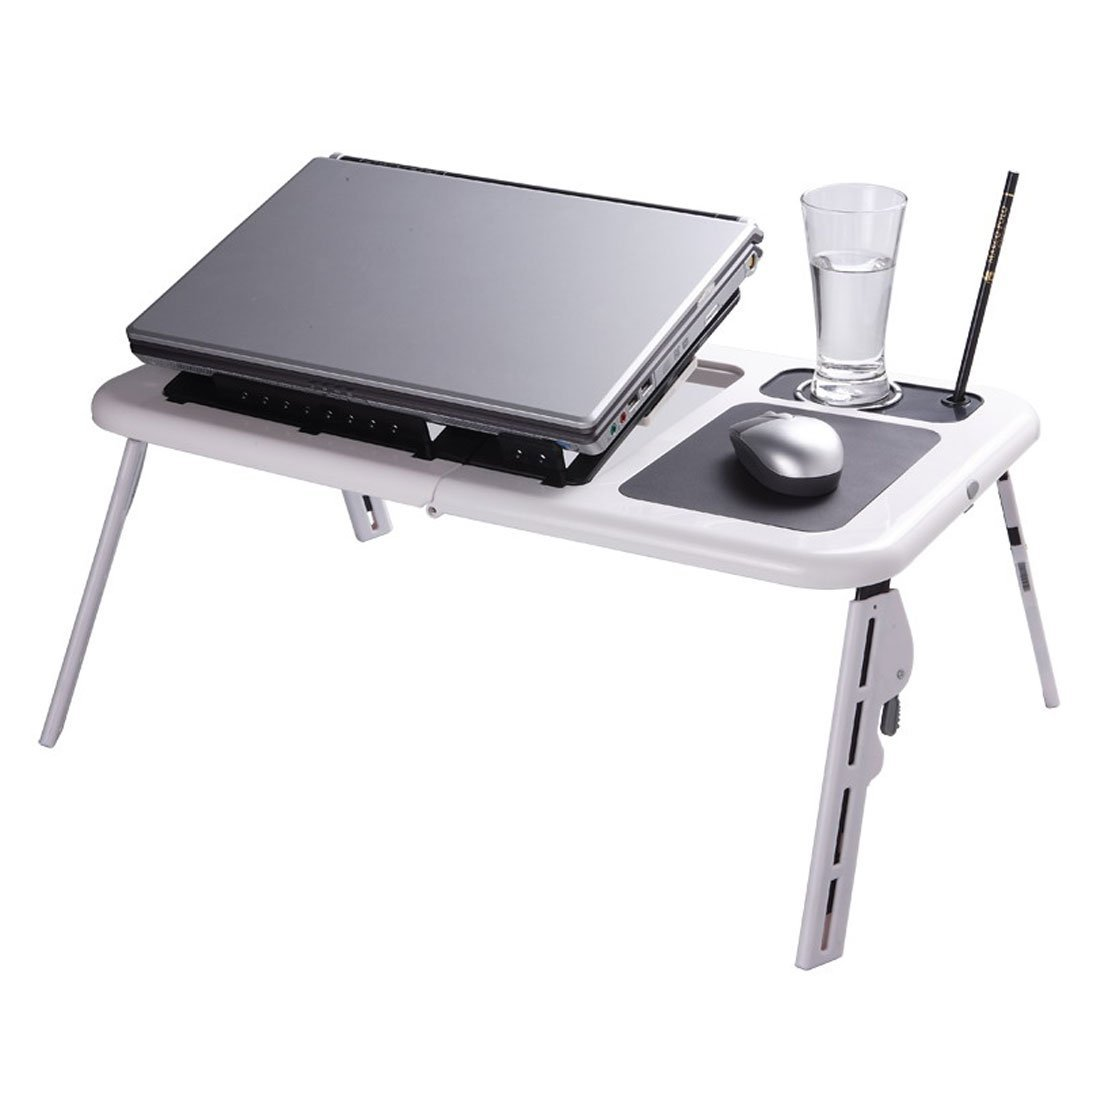 laptop desk stand portable folding with adjustable legs 2 cooling fansusb port and